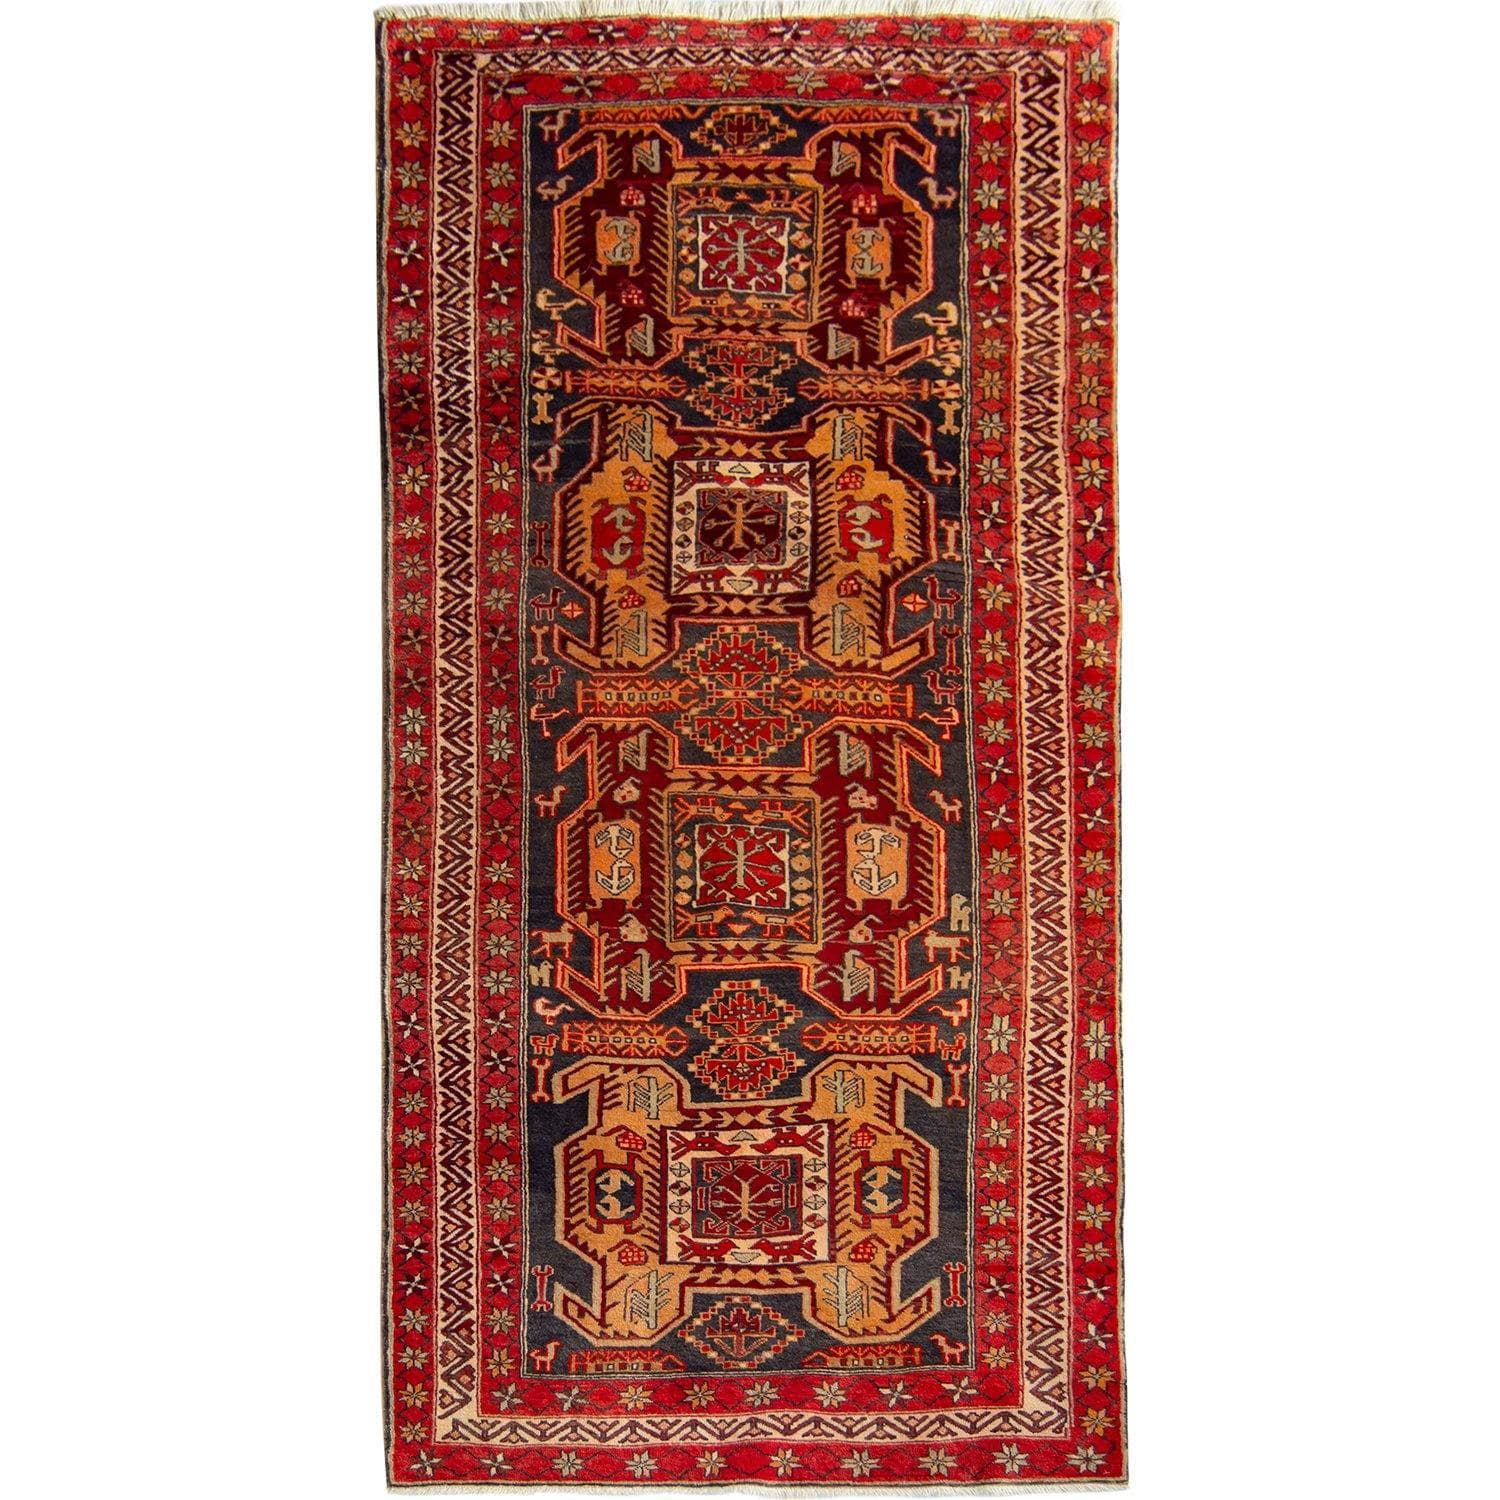 1573 Persian-Rug | House-of-Haghi | NewMarket | Auckland | NZ | Handmade Persian Rugs | Hand Knotted Persian Rugs